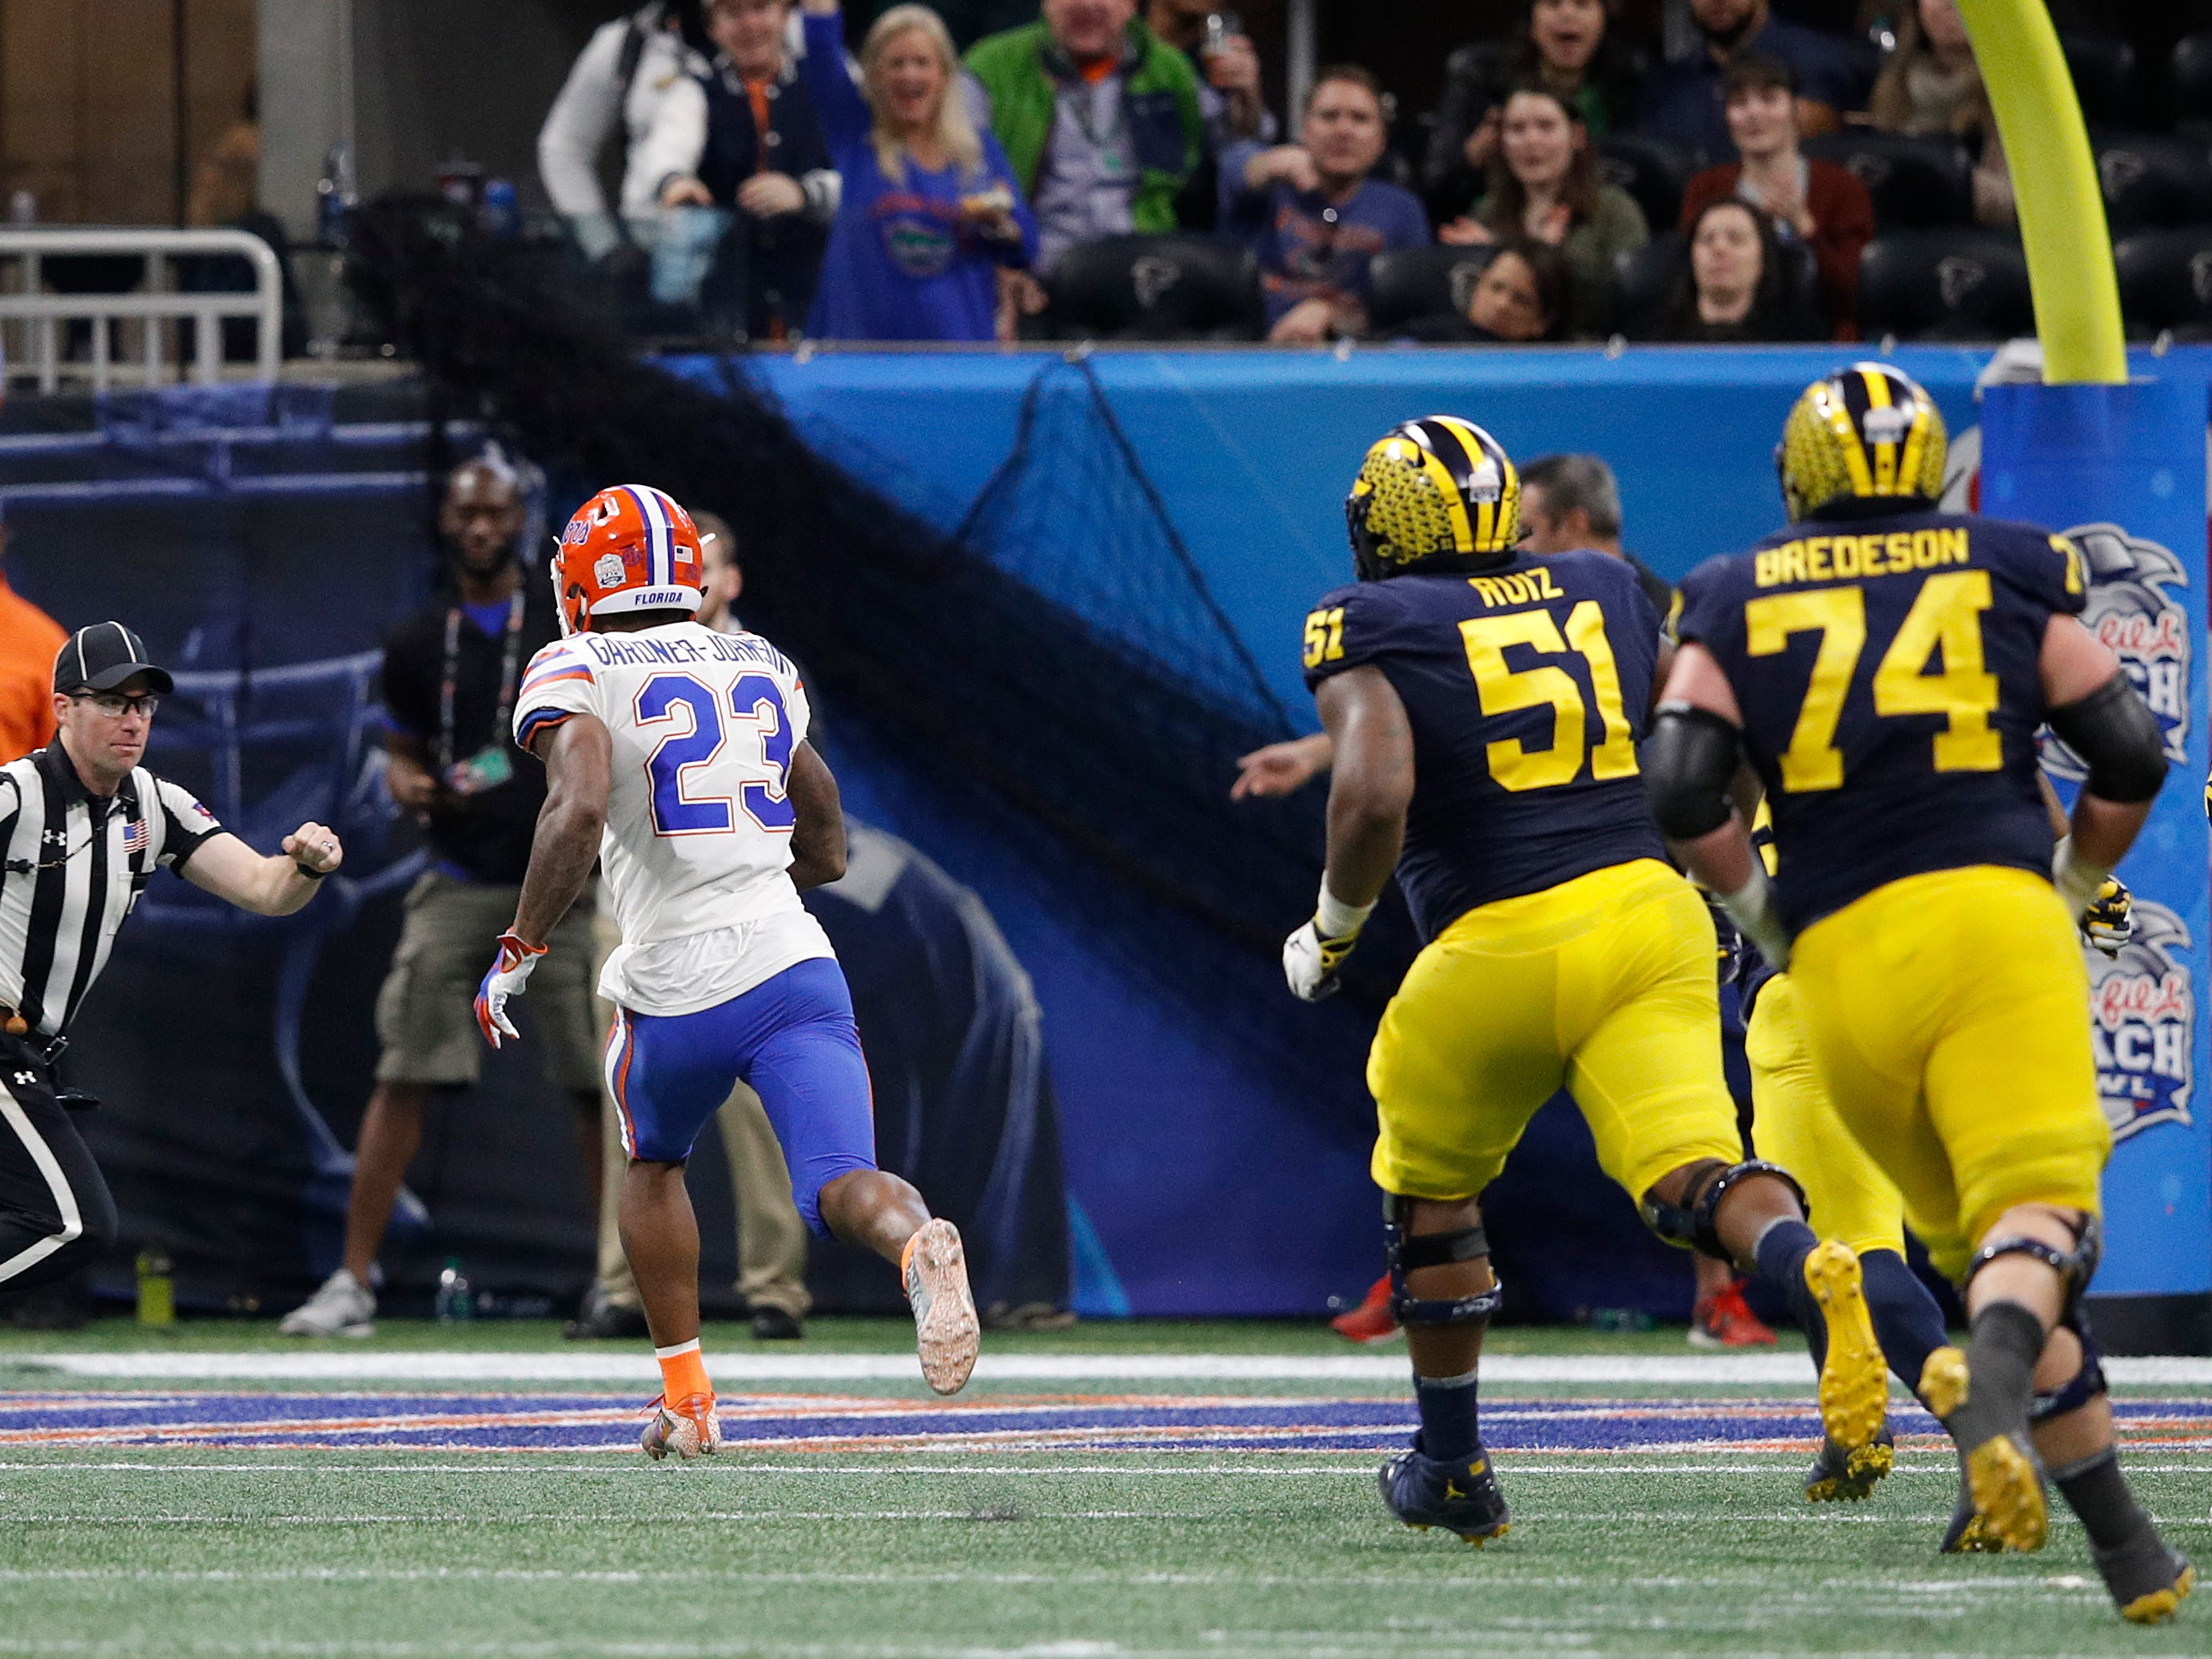 Florida defensive back Chauncey Gardner-Johnson returns an interception for a touchdown in the fourth quarter during U-M's 41-15 loss in the Peach Bowl on Saturday, Dec. 29, 2018, in Atlanta.